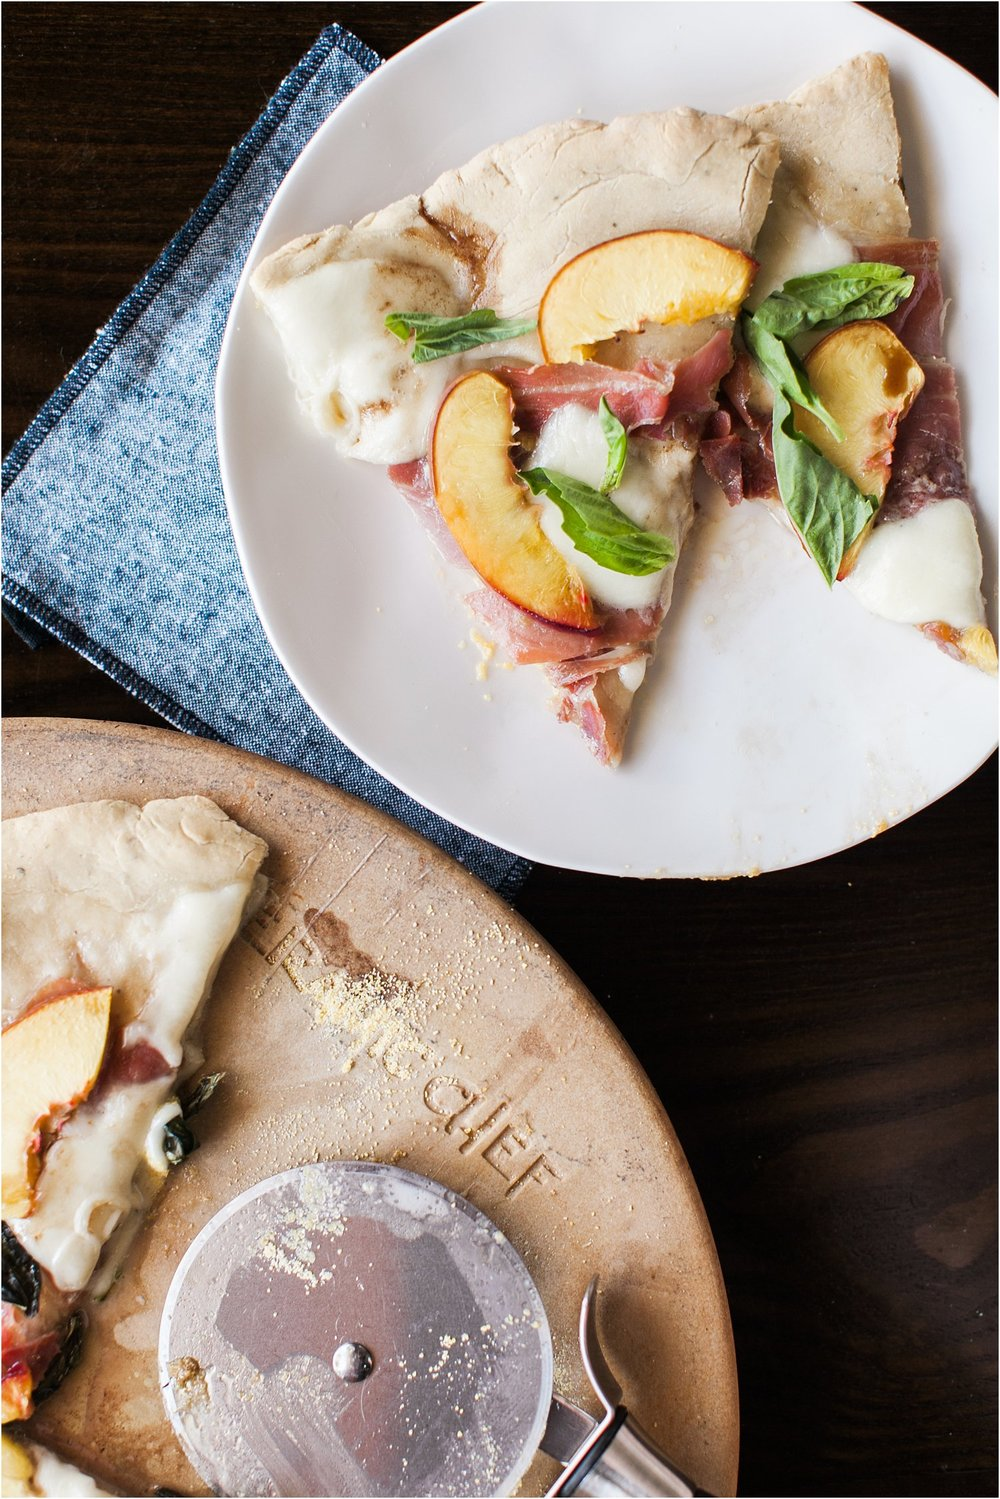 Nectarine, Prosciutto, Mozzarella, Basil Pizza with Honey Balsamic | Feast & Dwell